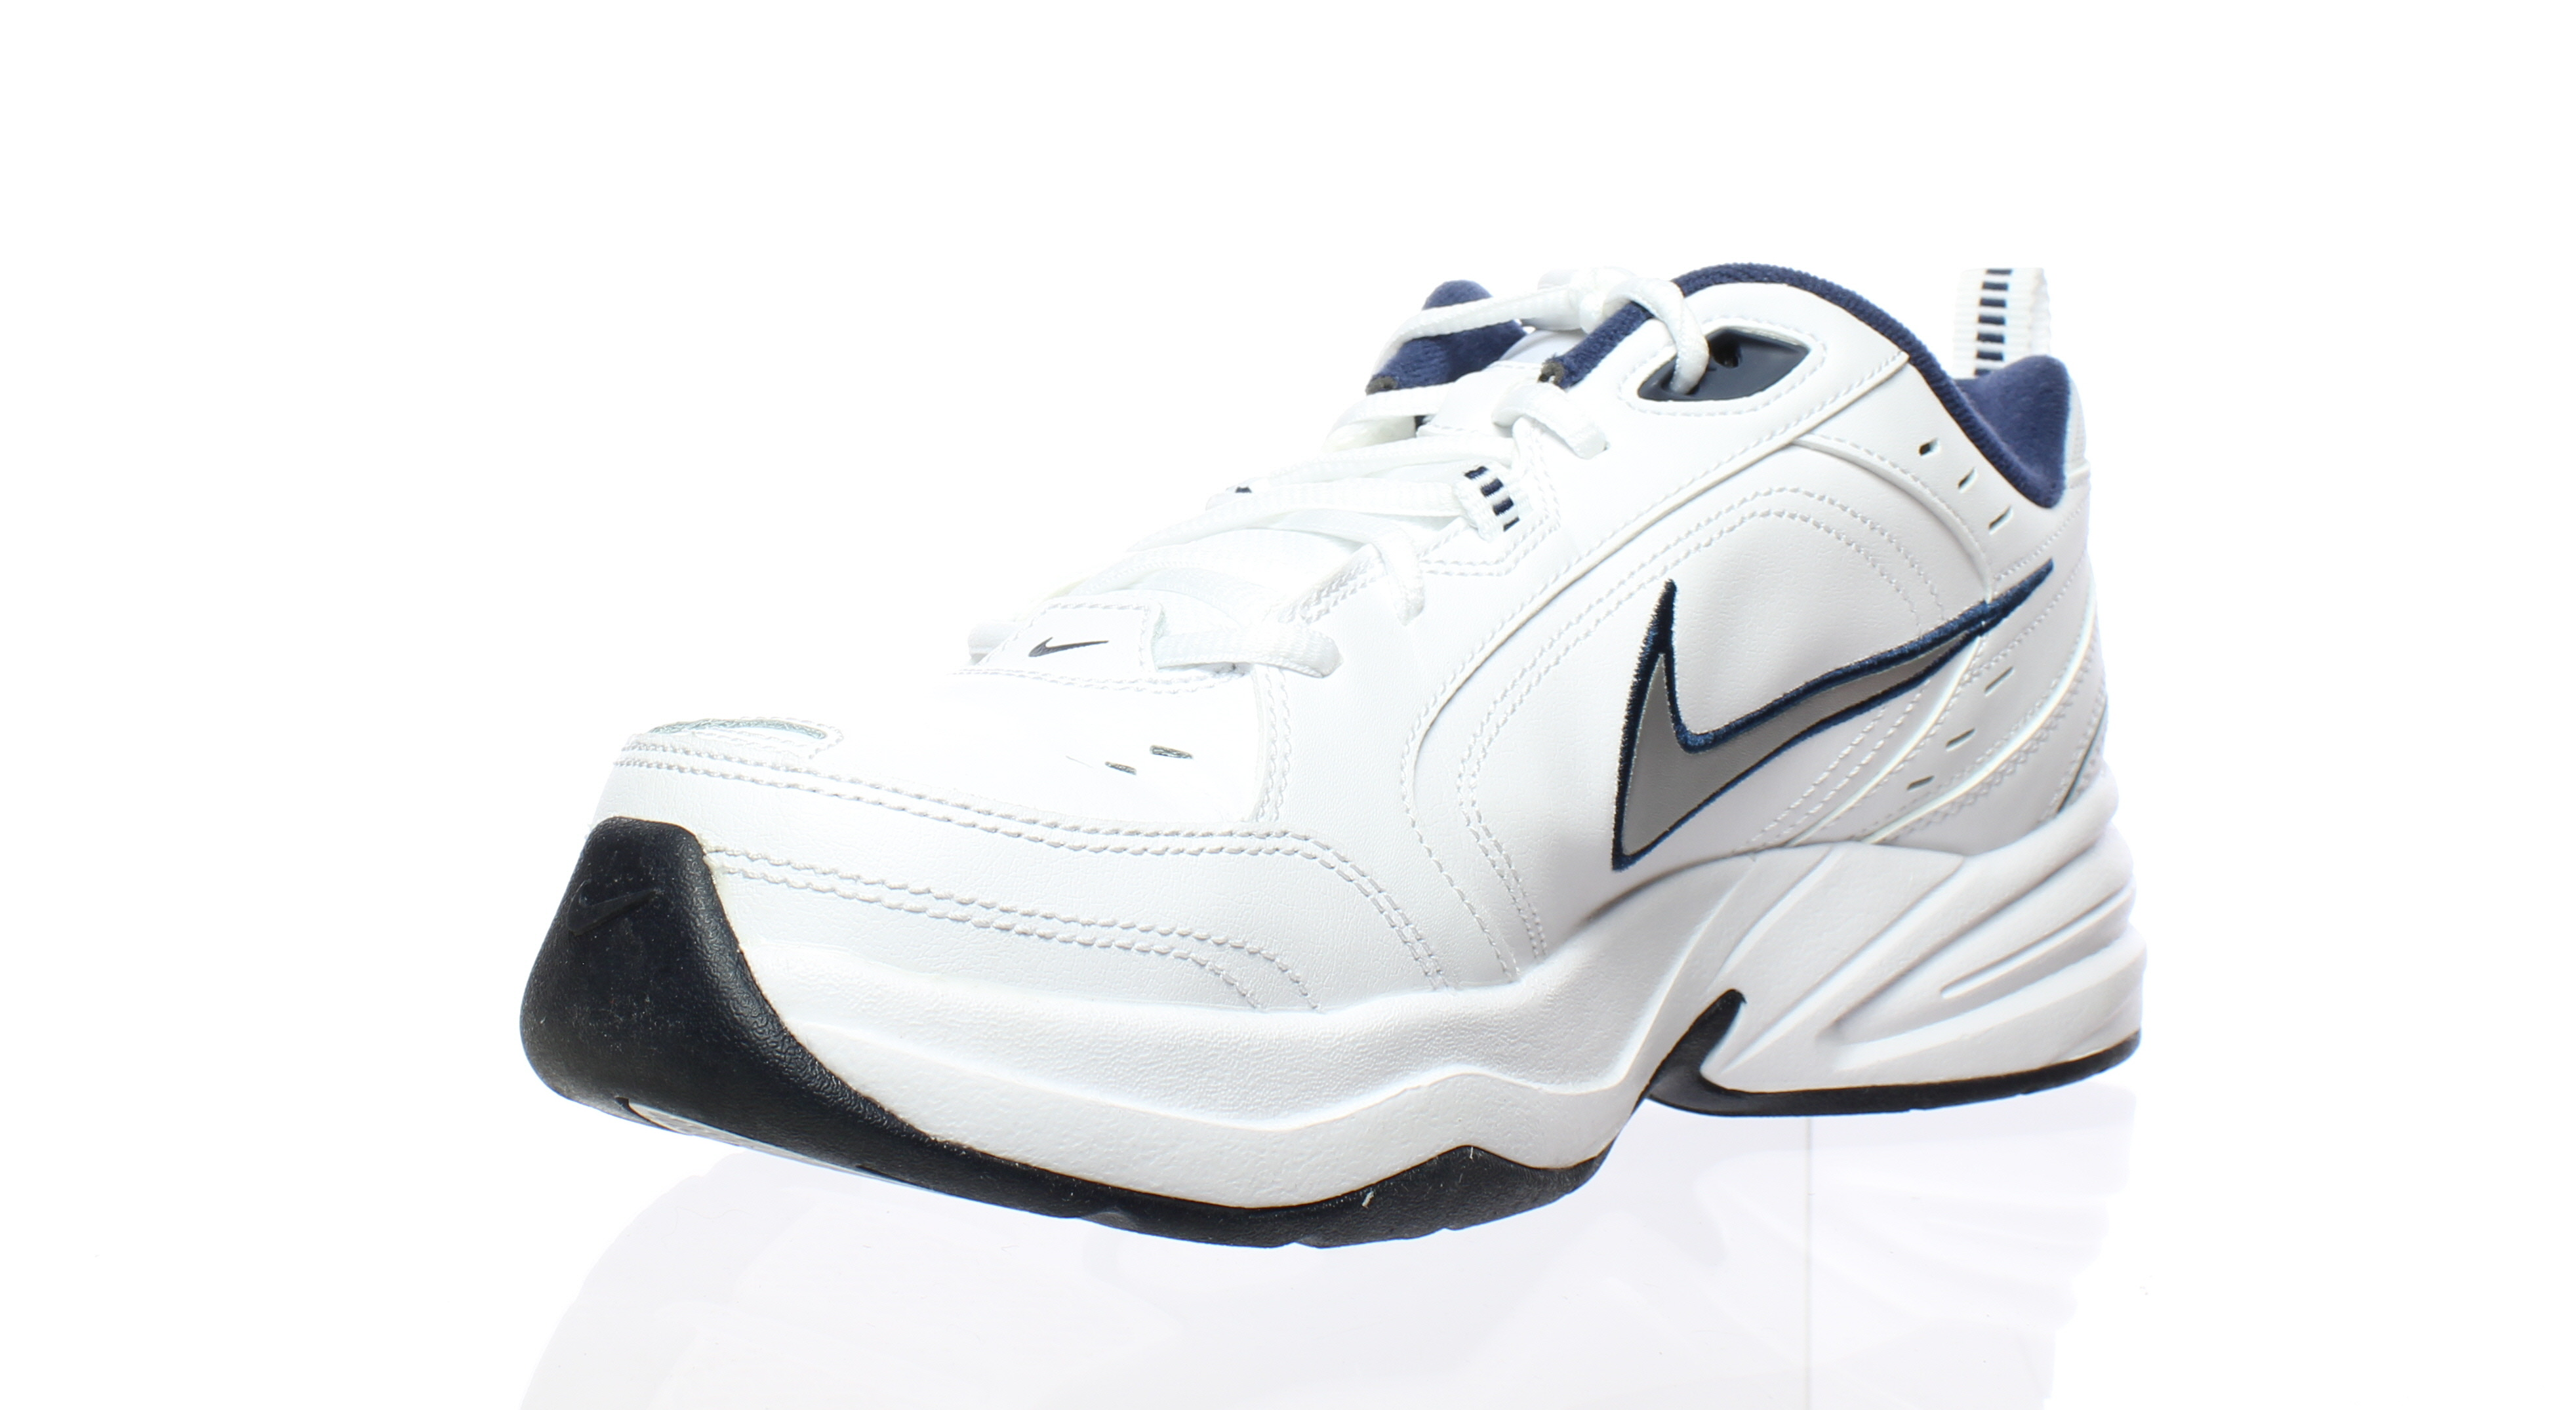 78a6a4c2e469 ... Nike Mens 415445 White White White Running Shoes Size 10 (16047) 6ae217  ...